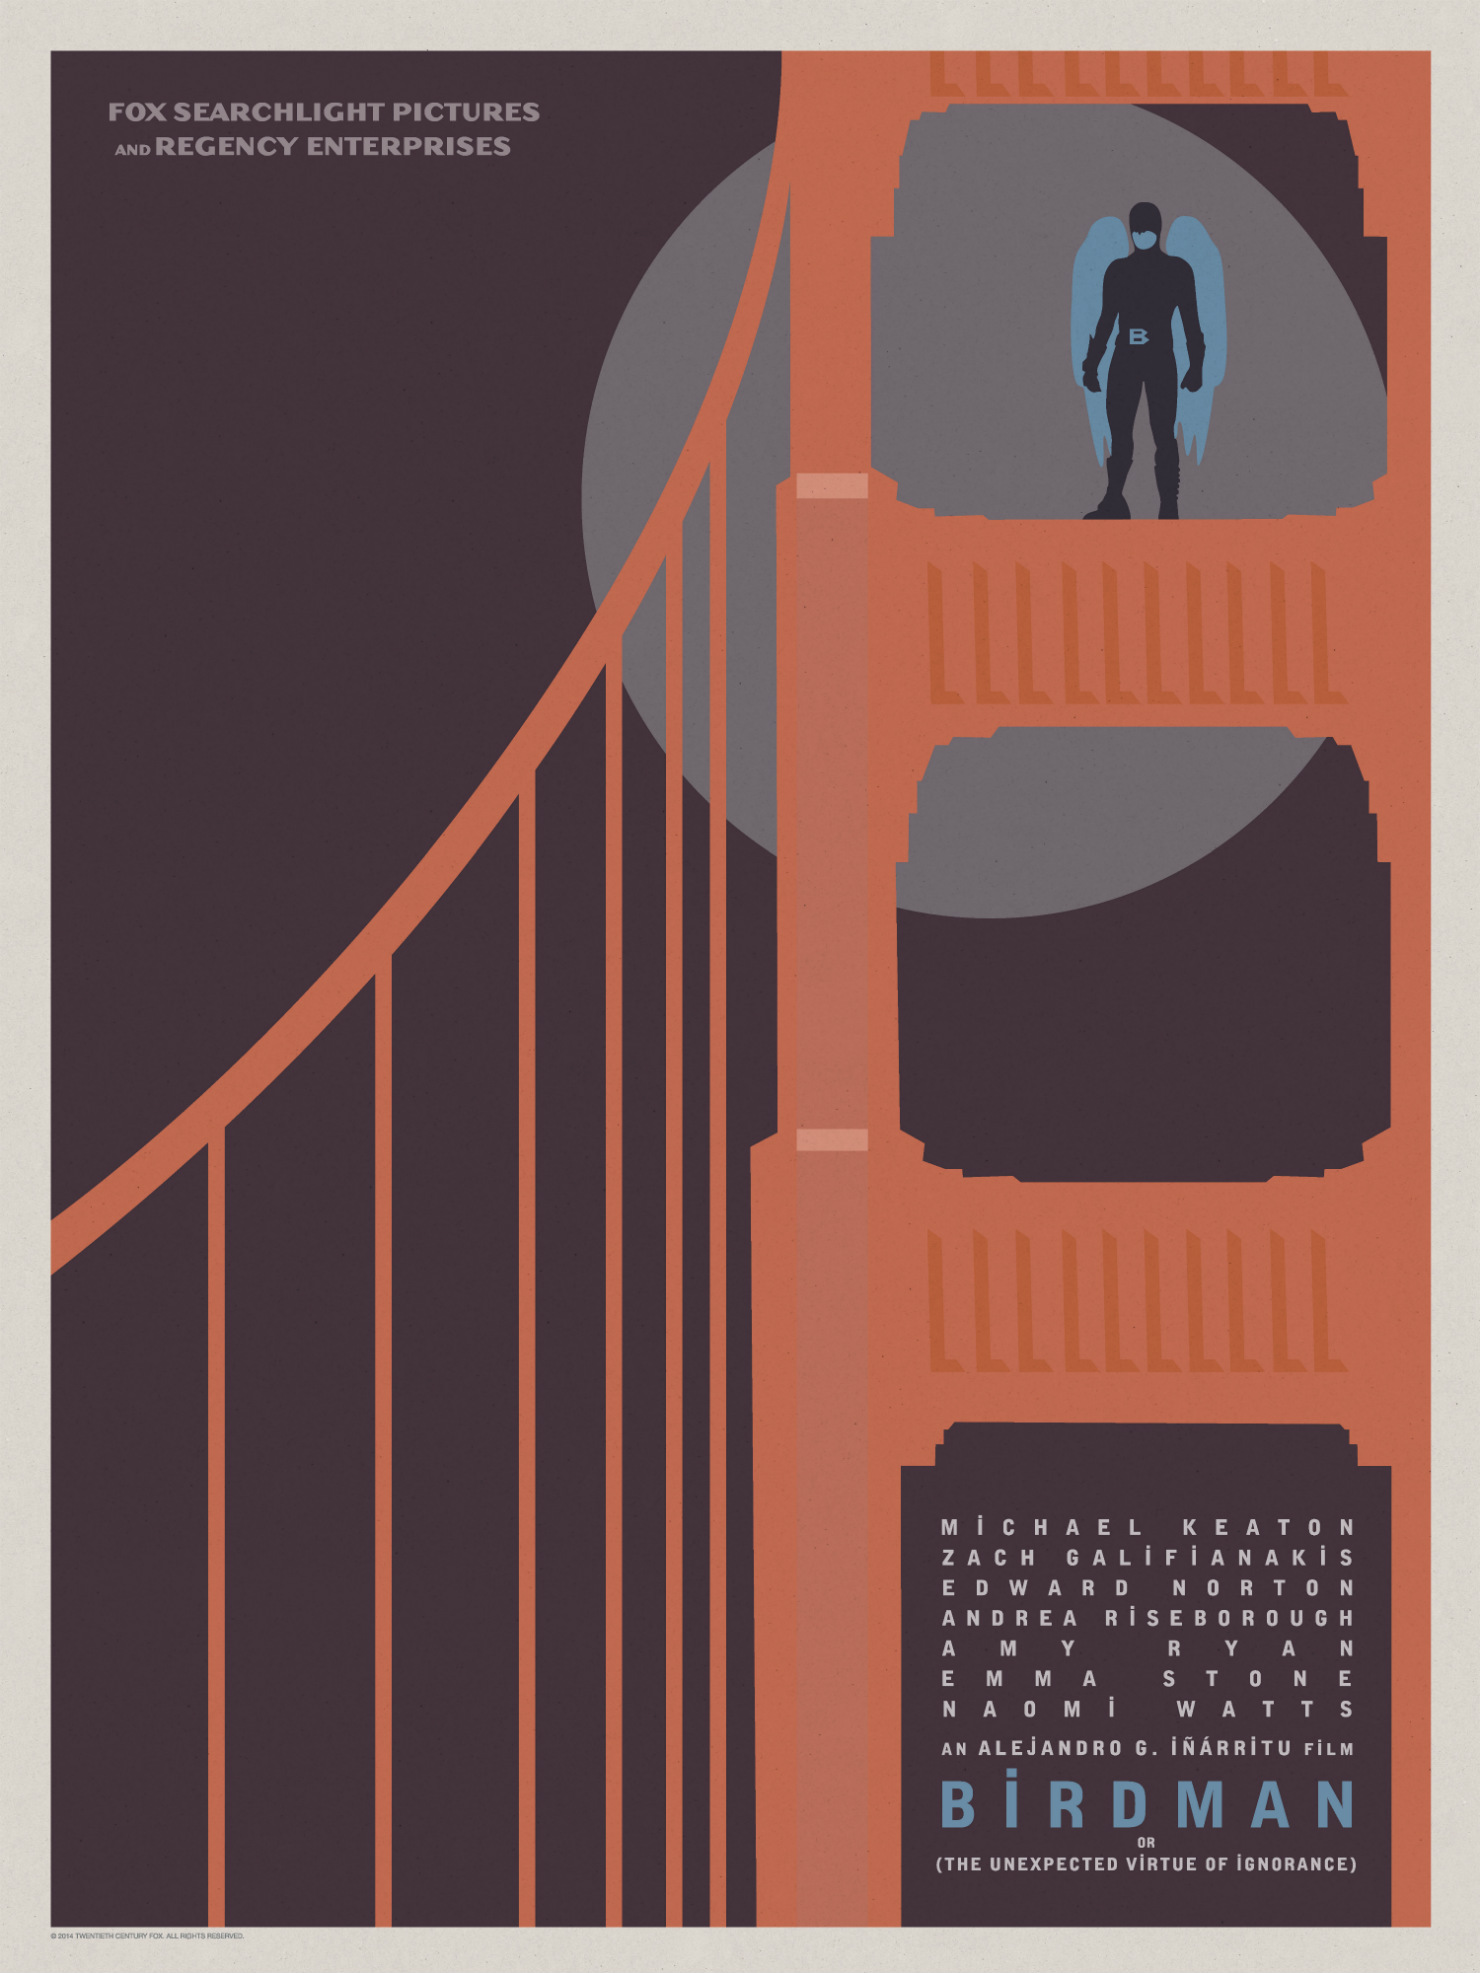 Birdman-Official Poster Minimalist XLG-13OUTUBRO2014-06